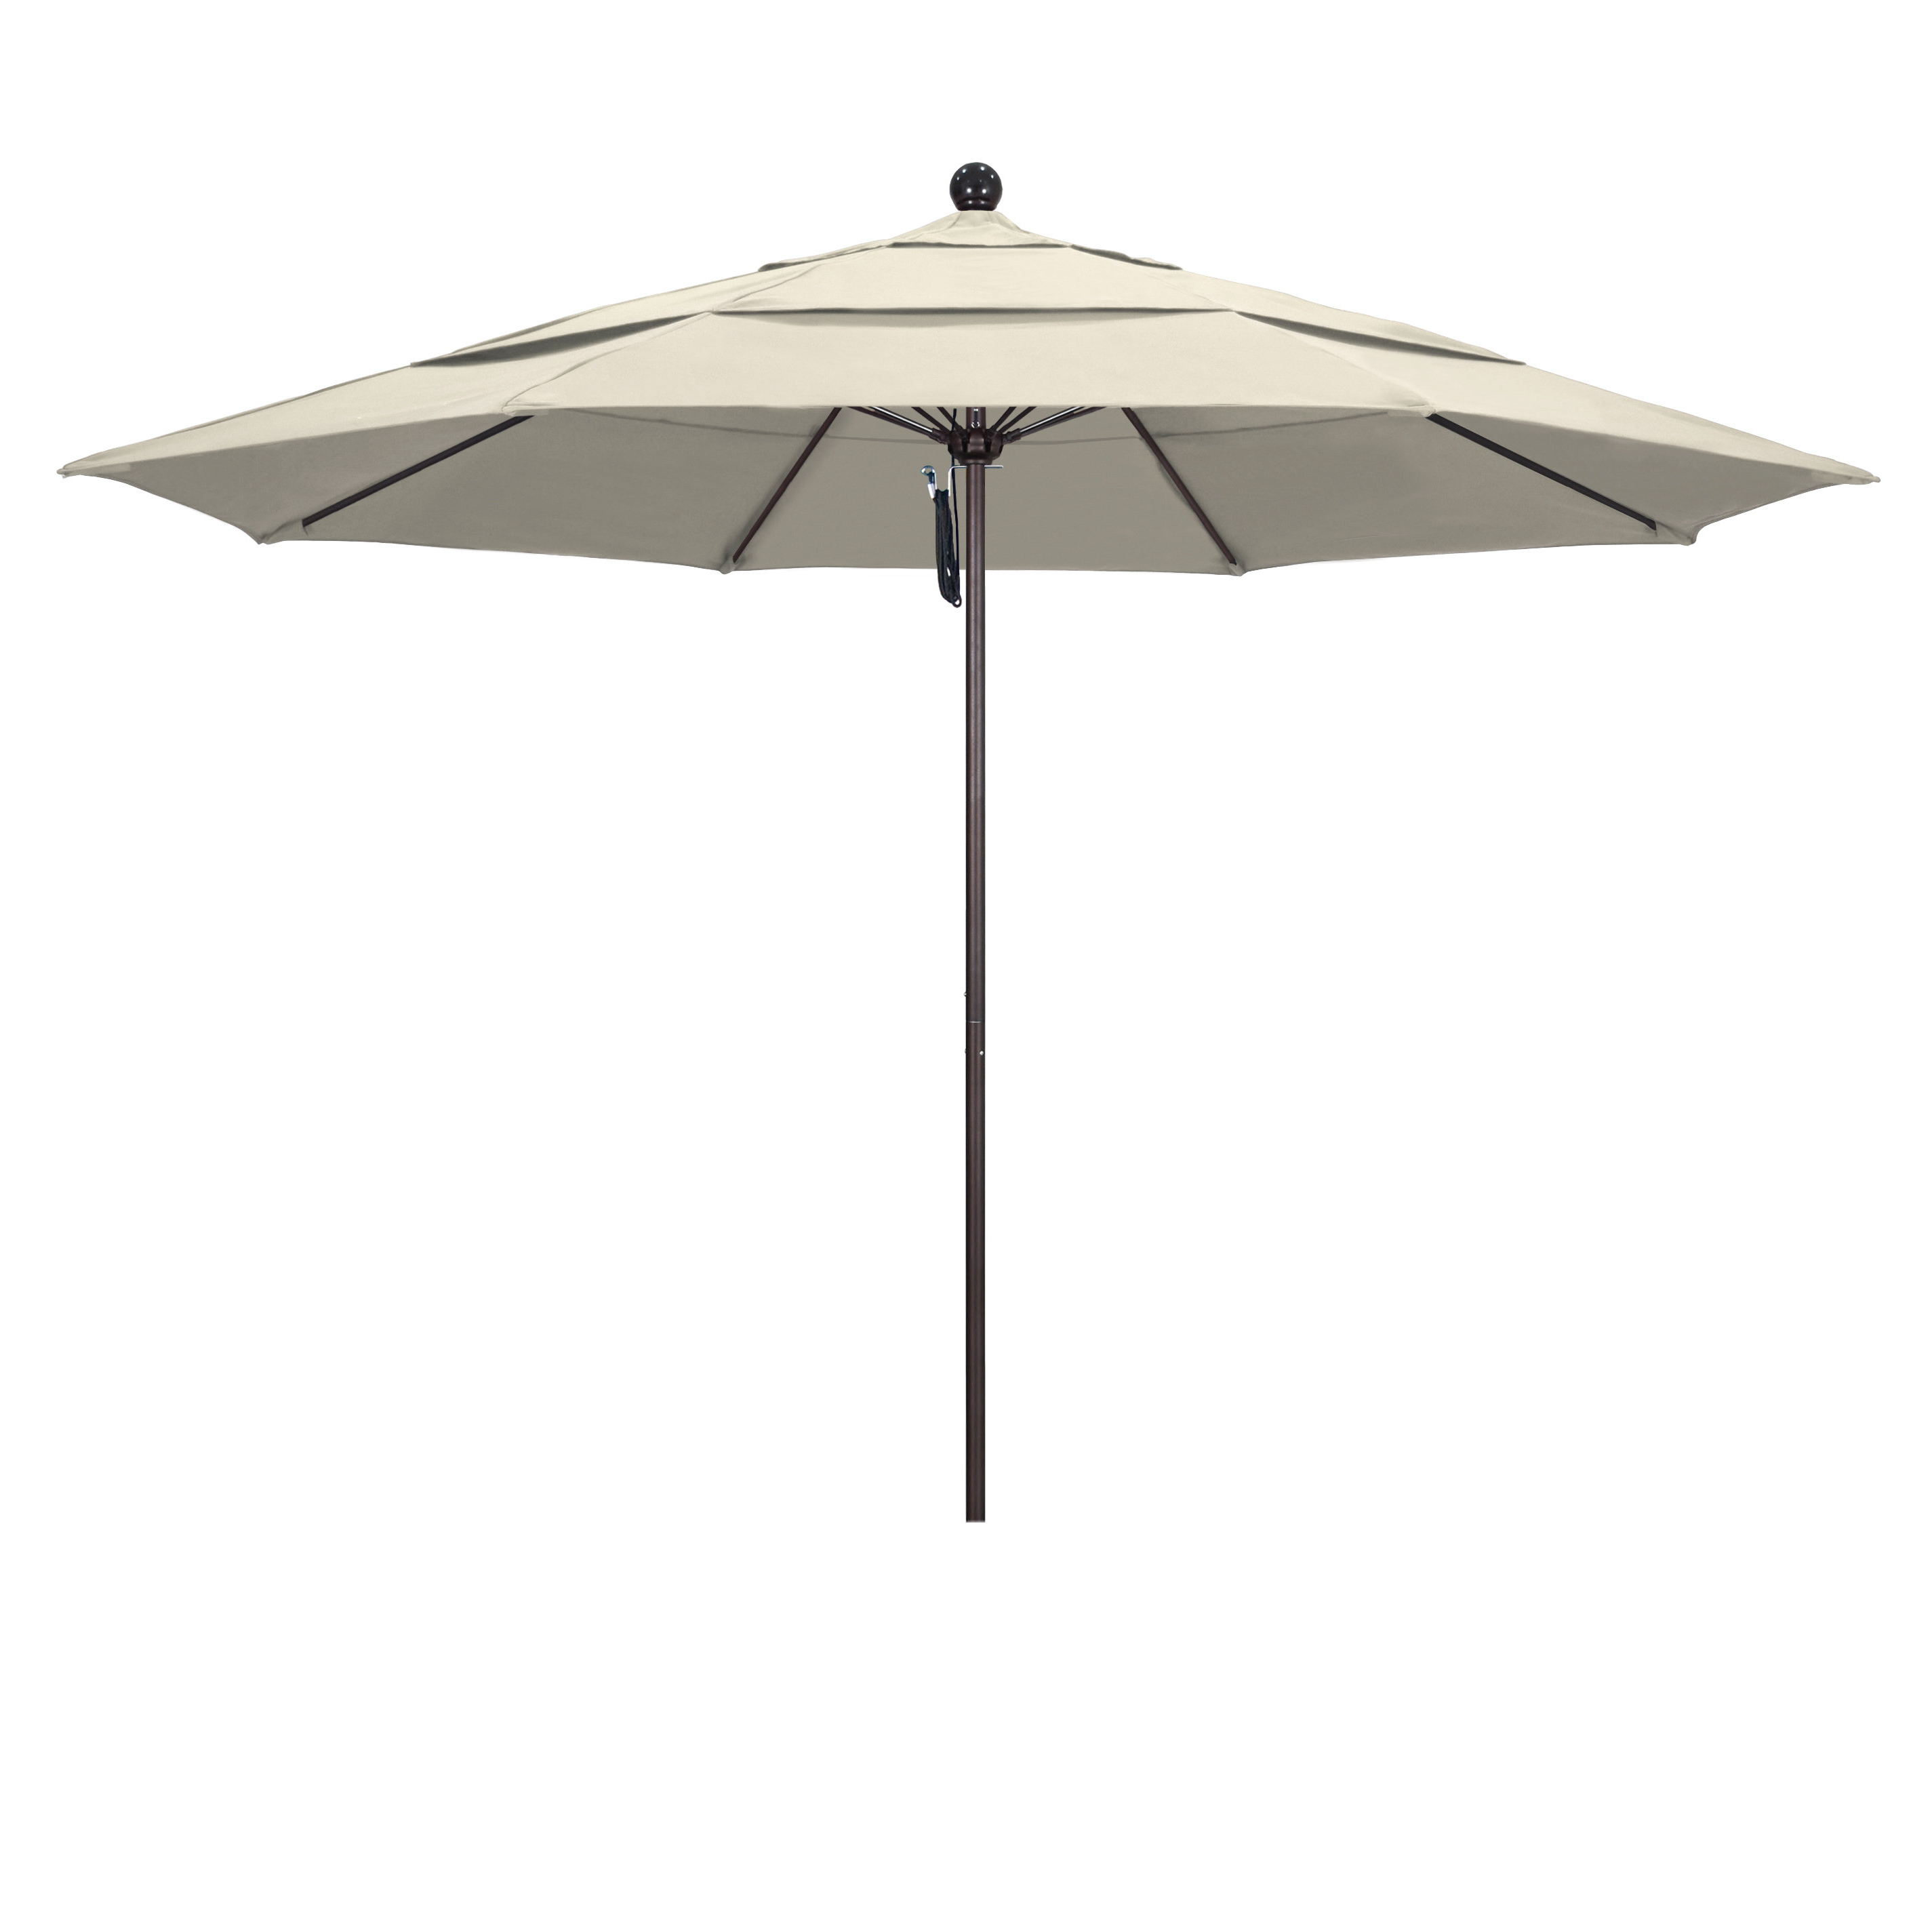 Caravelle 11' Market Umbrella In Fashionable Caravelle Square Market Sunbrella Umbrellas (View 5 of 20)